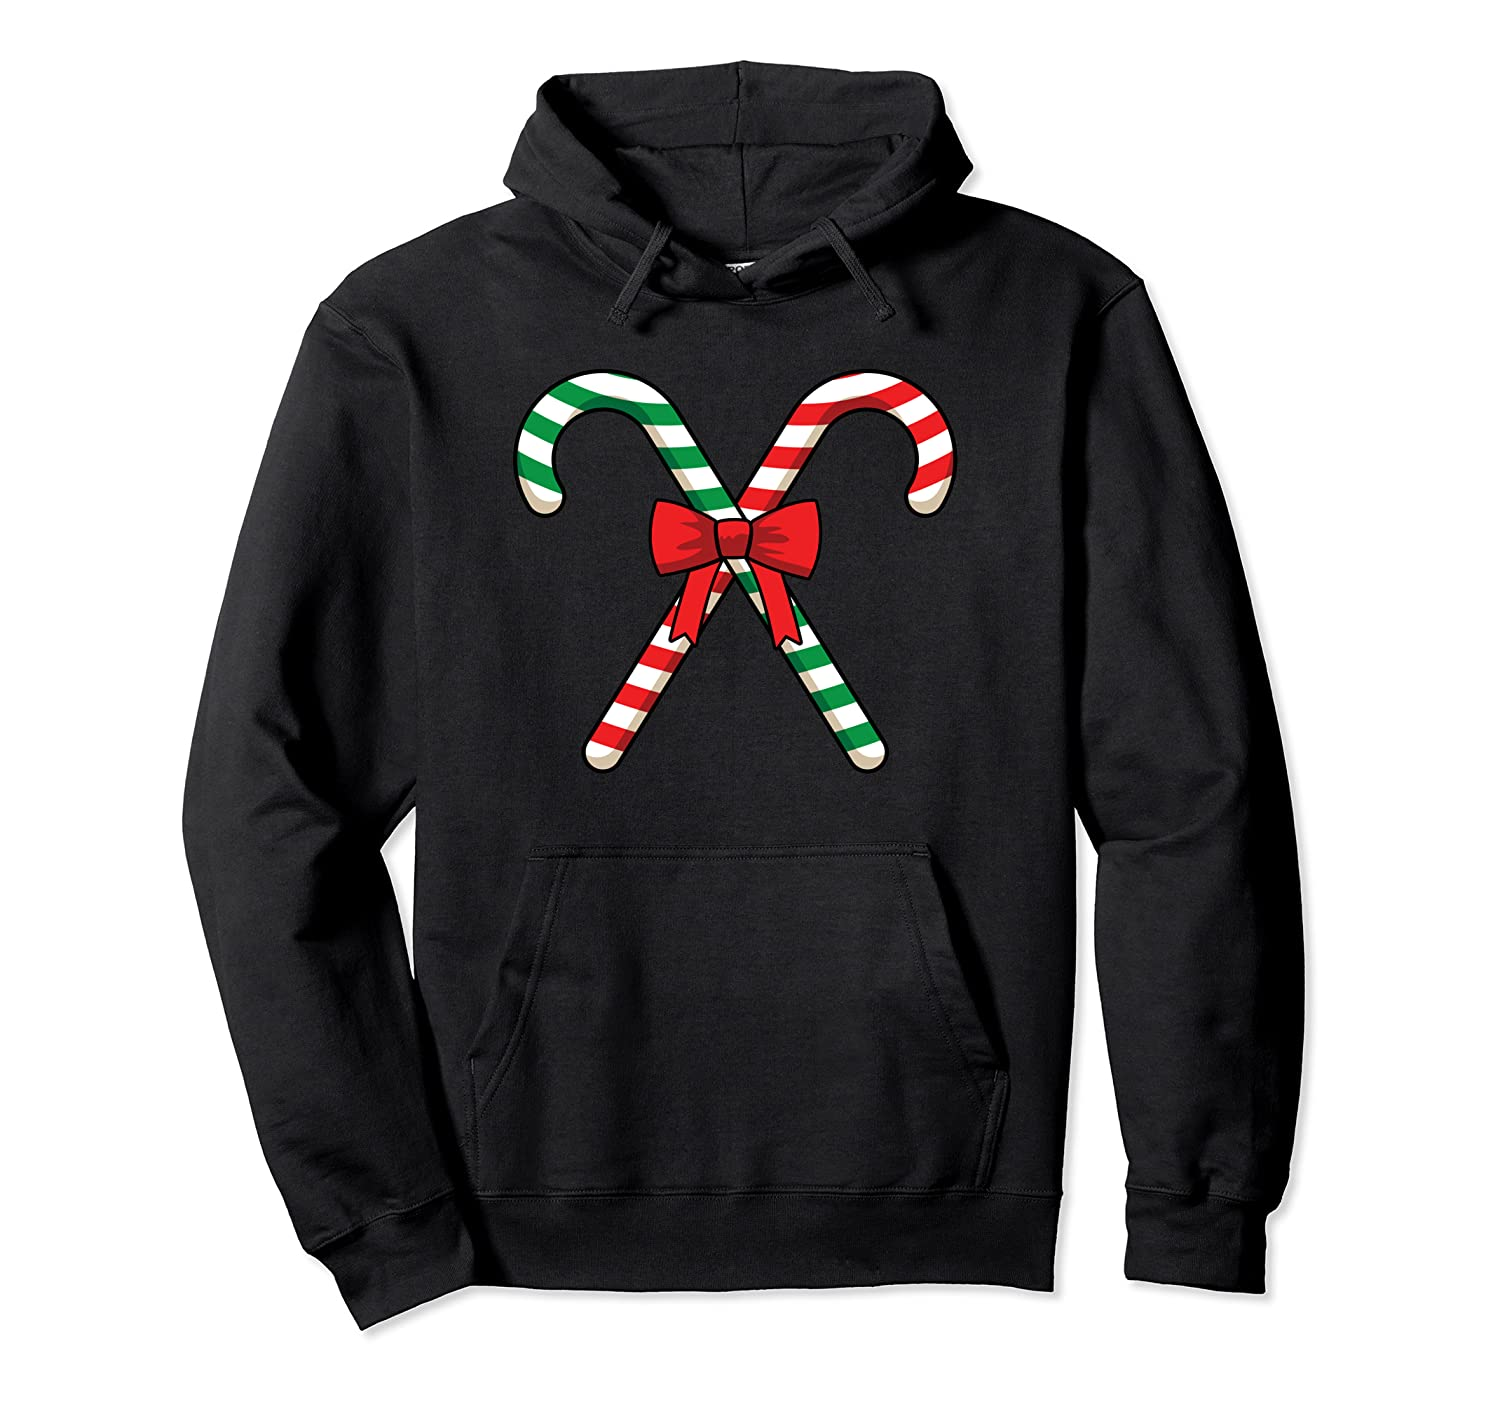 Big Giant Two Candy Canes Merry Christmas Funny Family Party Pullover Hoodie